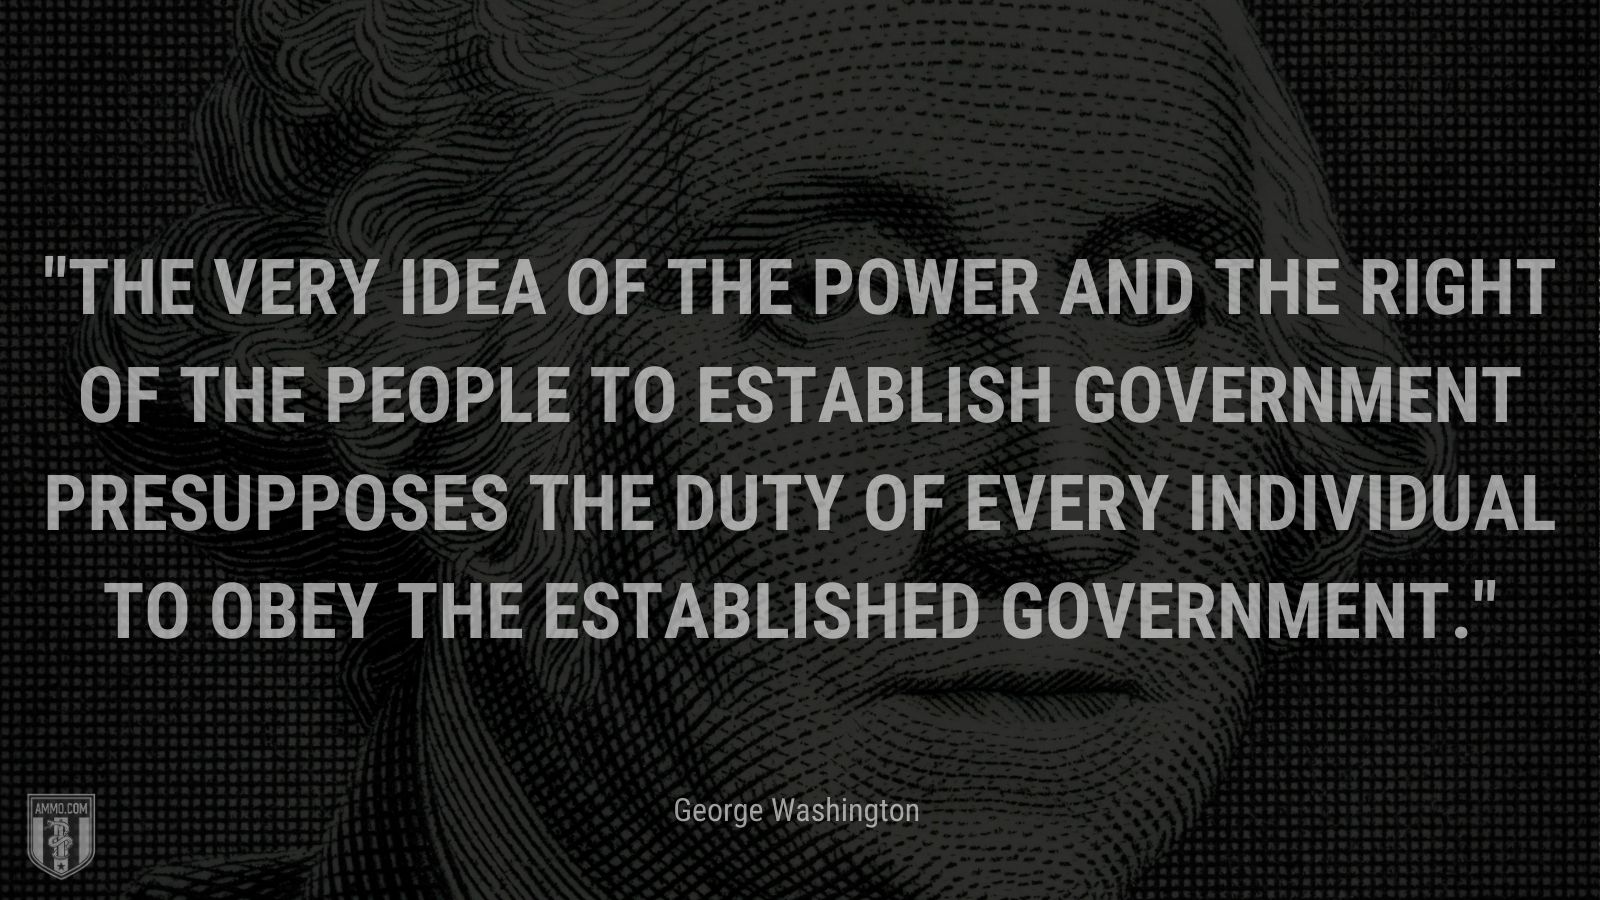 """""""The very idea of the power and the right of the People to establish Government presupposes the duty of every Individual to obey the established Government."""" - George Washington"""